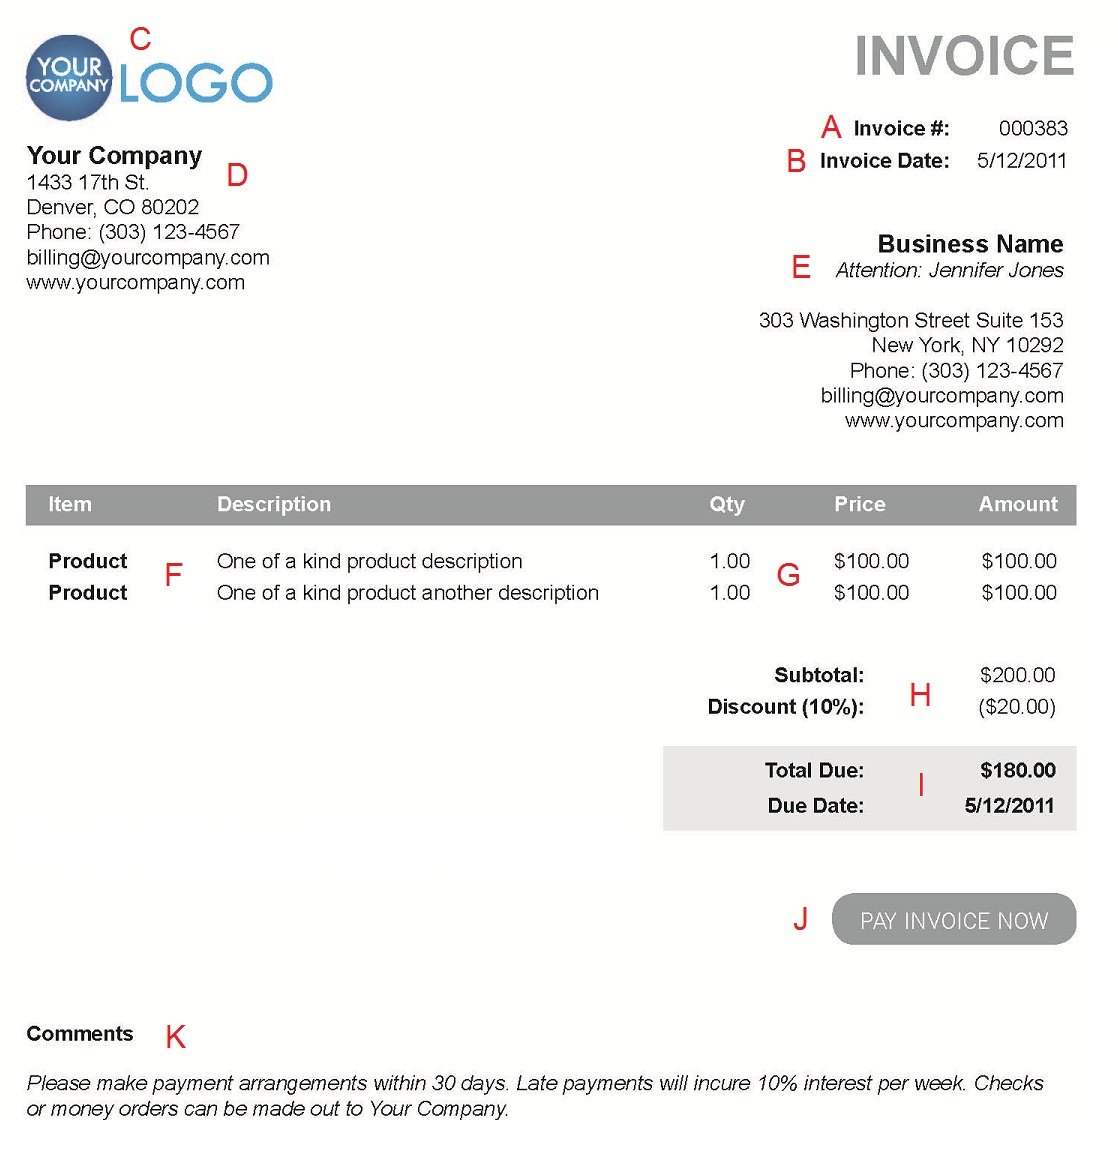 Reliefworkersus  Gorgeous The  Different Sections Of An Electronic Payment Invoice With Licious A  With Adorable Invoice Forms Templates Also Invoice App For Mac In Addition Free Invoices To Print And Express Invoice Review As Well As Best Invoice App For Android Additionally Sample Invoice Forms From Paysimplecom With Reliefworkersus  Licious The  Different Sections Of An Electronic Payment Invoice With Adorable A  And Gorgeous Invoice Forms Templates Also Invoice App For Mac In Addition Free Invoices To Print From Paysimplecom